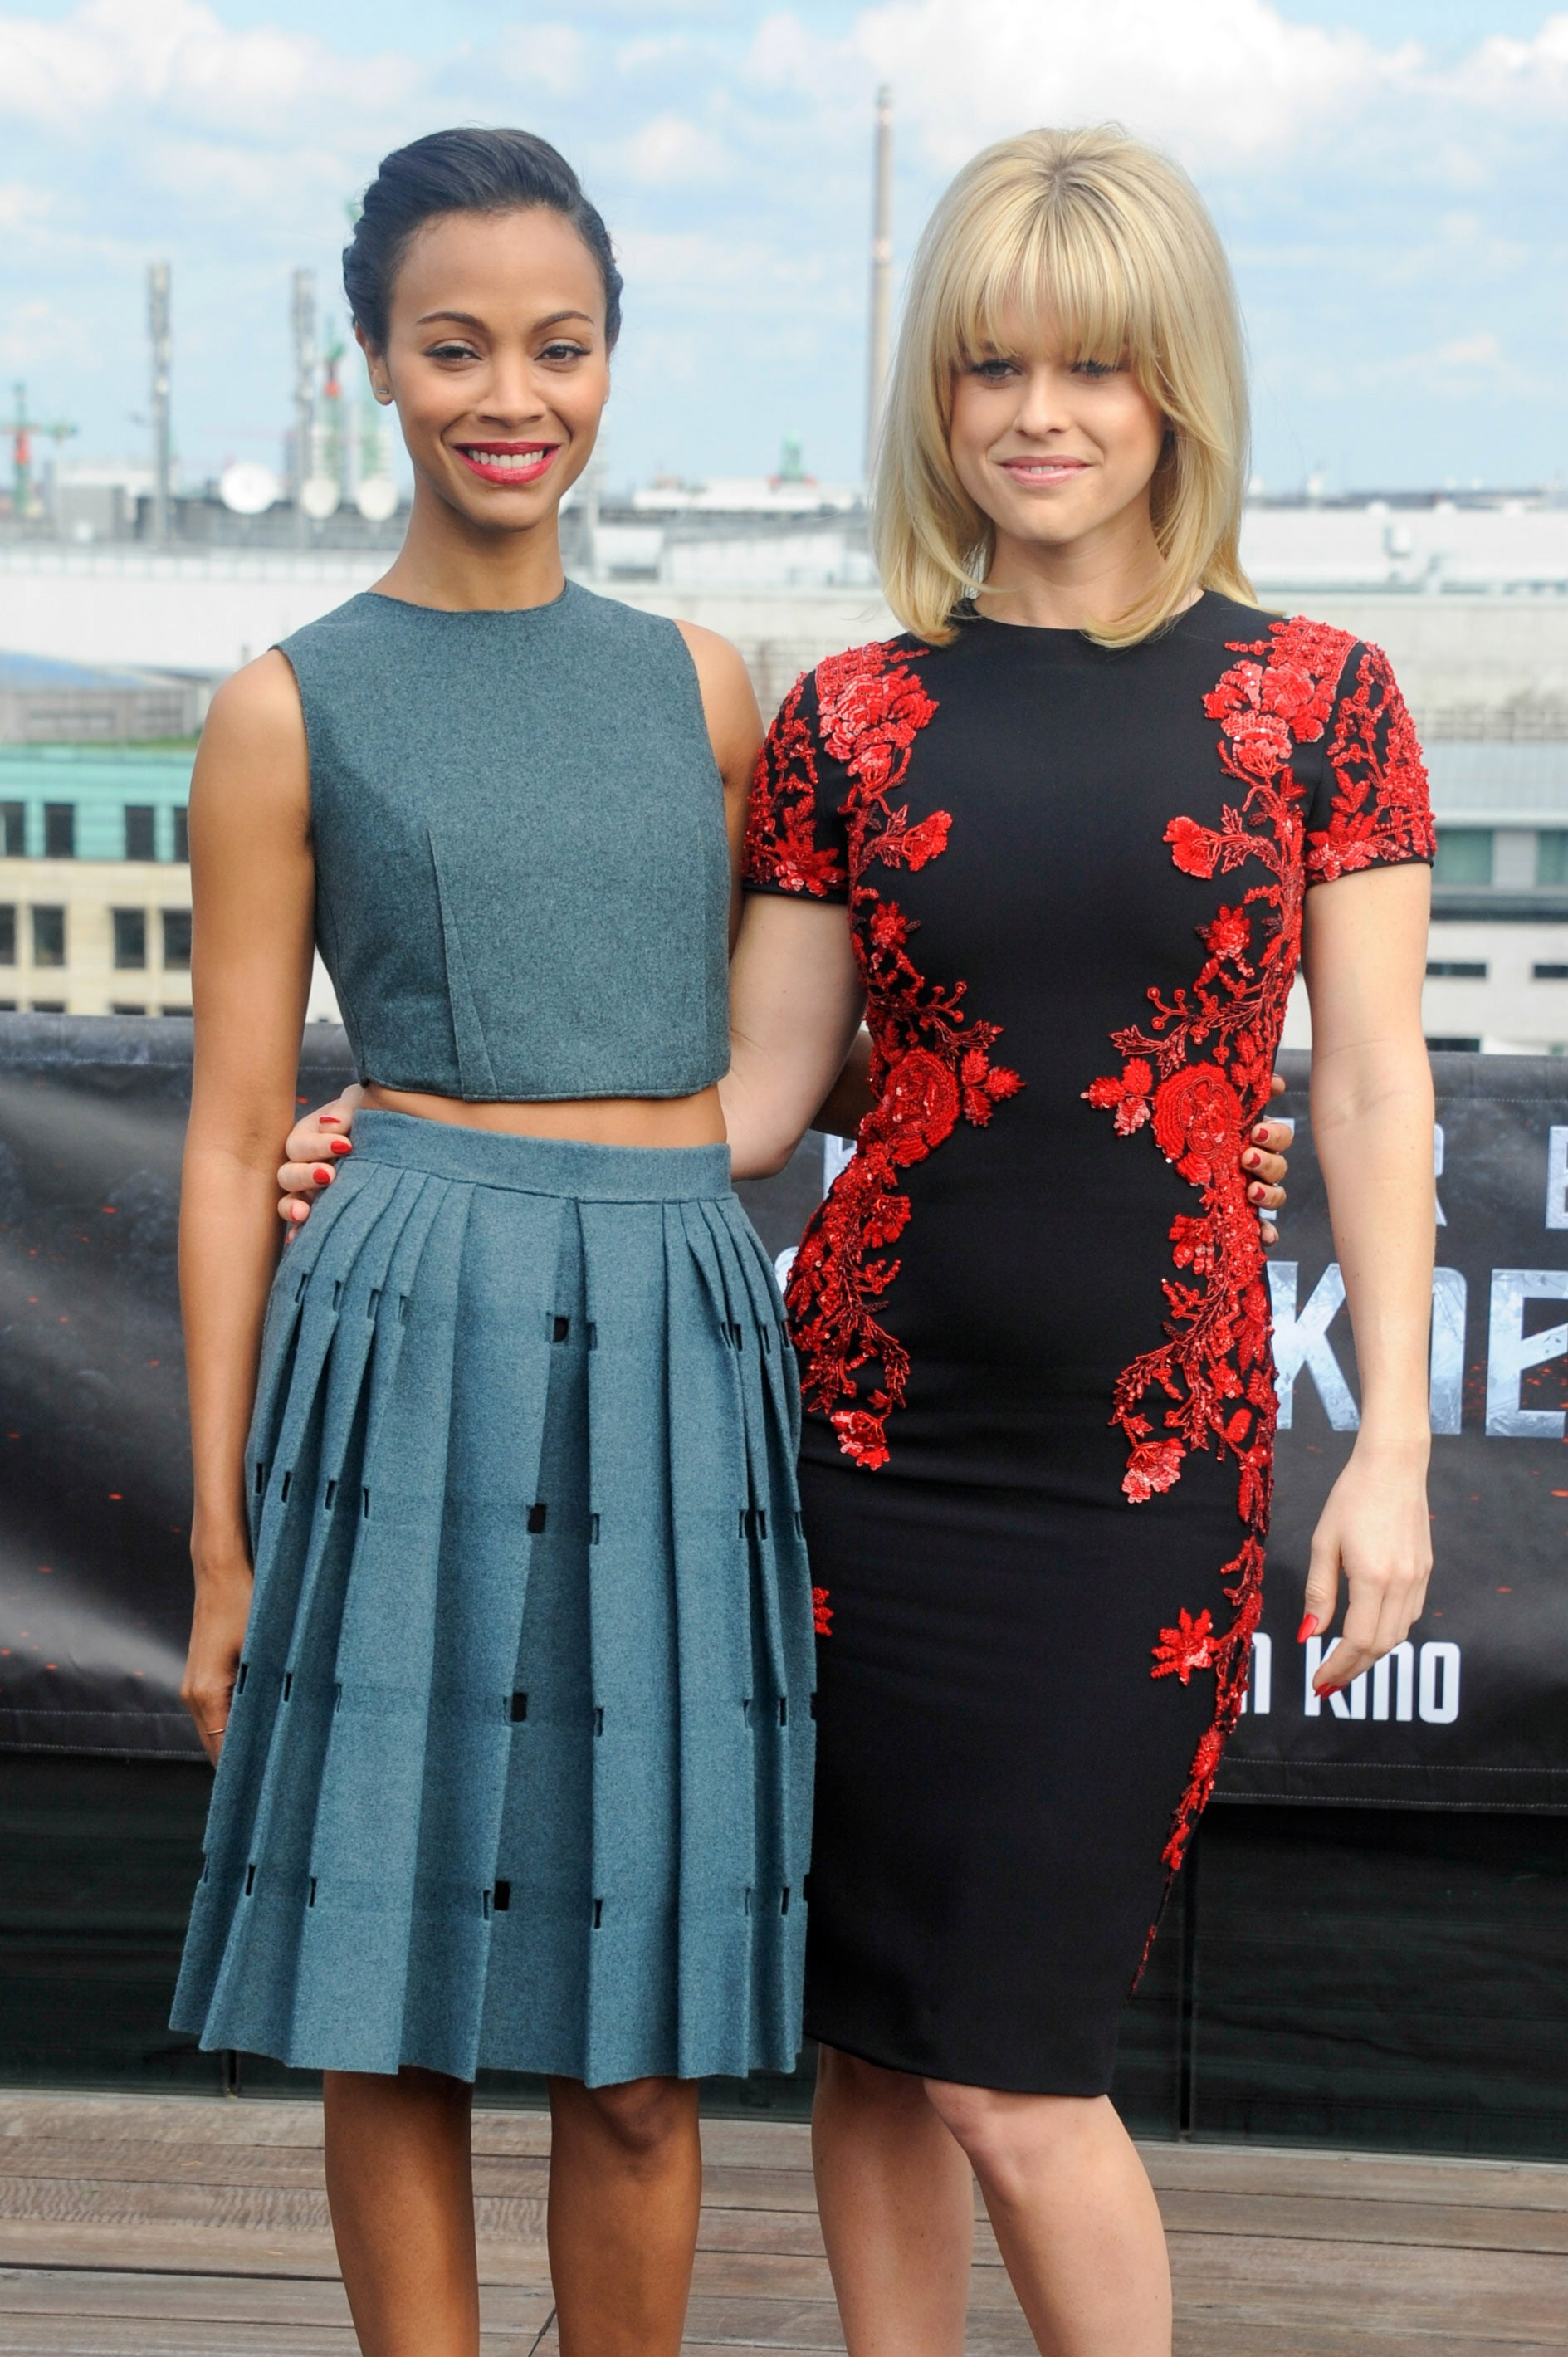 A closer look at the costars' knee-length cocktail dresses. Zoe Saldana chose a Calvin Klein Fall '13 look, while Alice Eve went with something from Reem Acra's Fall '13 collection.